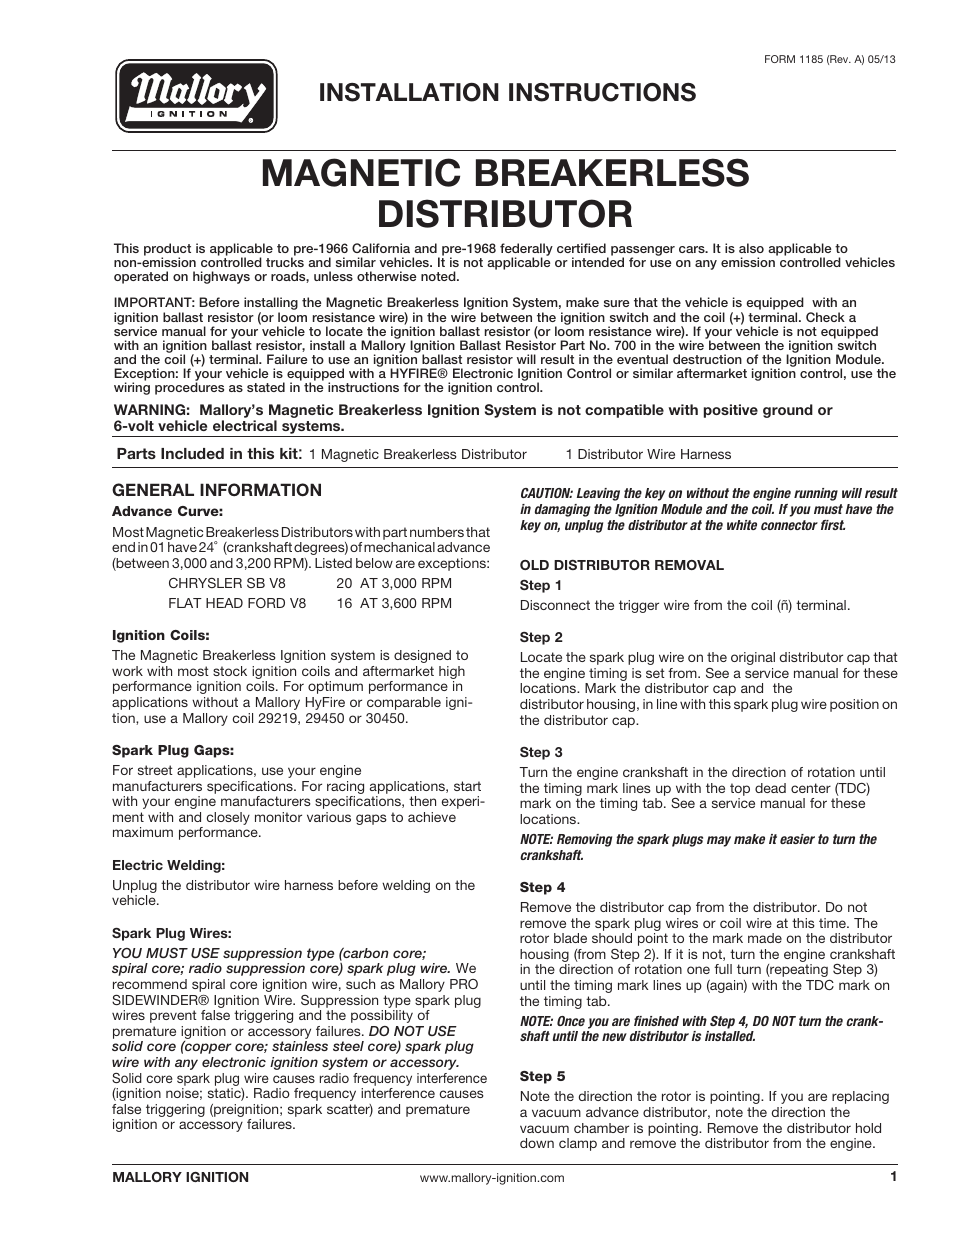 Mallory Magnetic Breakerless Distributor Wiring Diagram on msd 6al diagram, mallory dist wiring-diagram, electronic ignition diagram, omc ignition switch diagram, mallory high fire wiring-diagram, atwood rv water heater diagram, inboard outboard motor diagram, basic car electrical system diagram, mallory carburetor diagram, fairbanks morse magneto diagram,